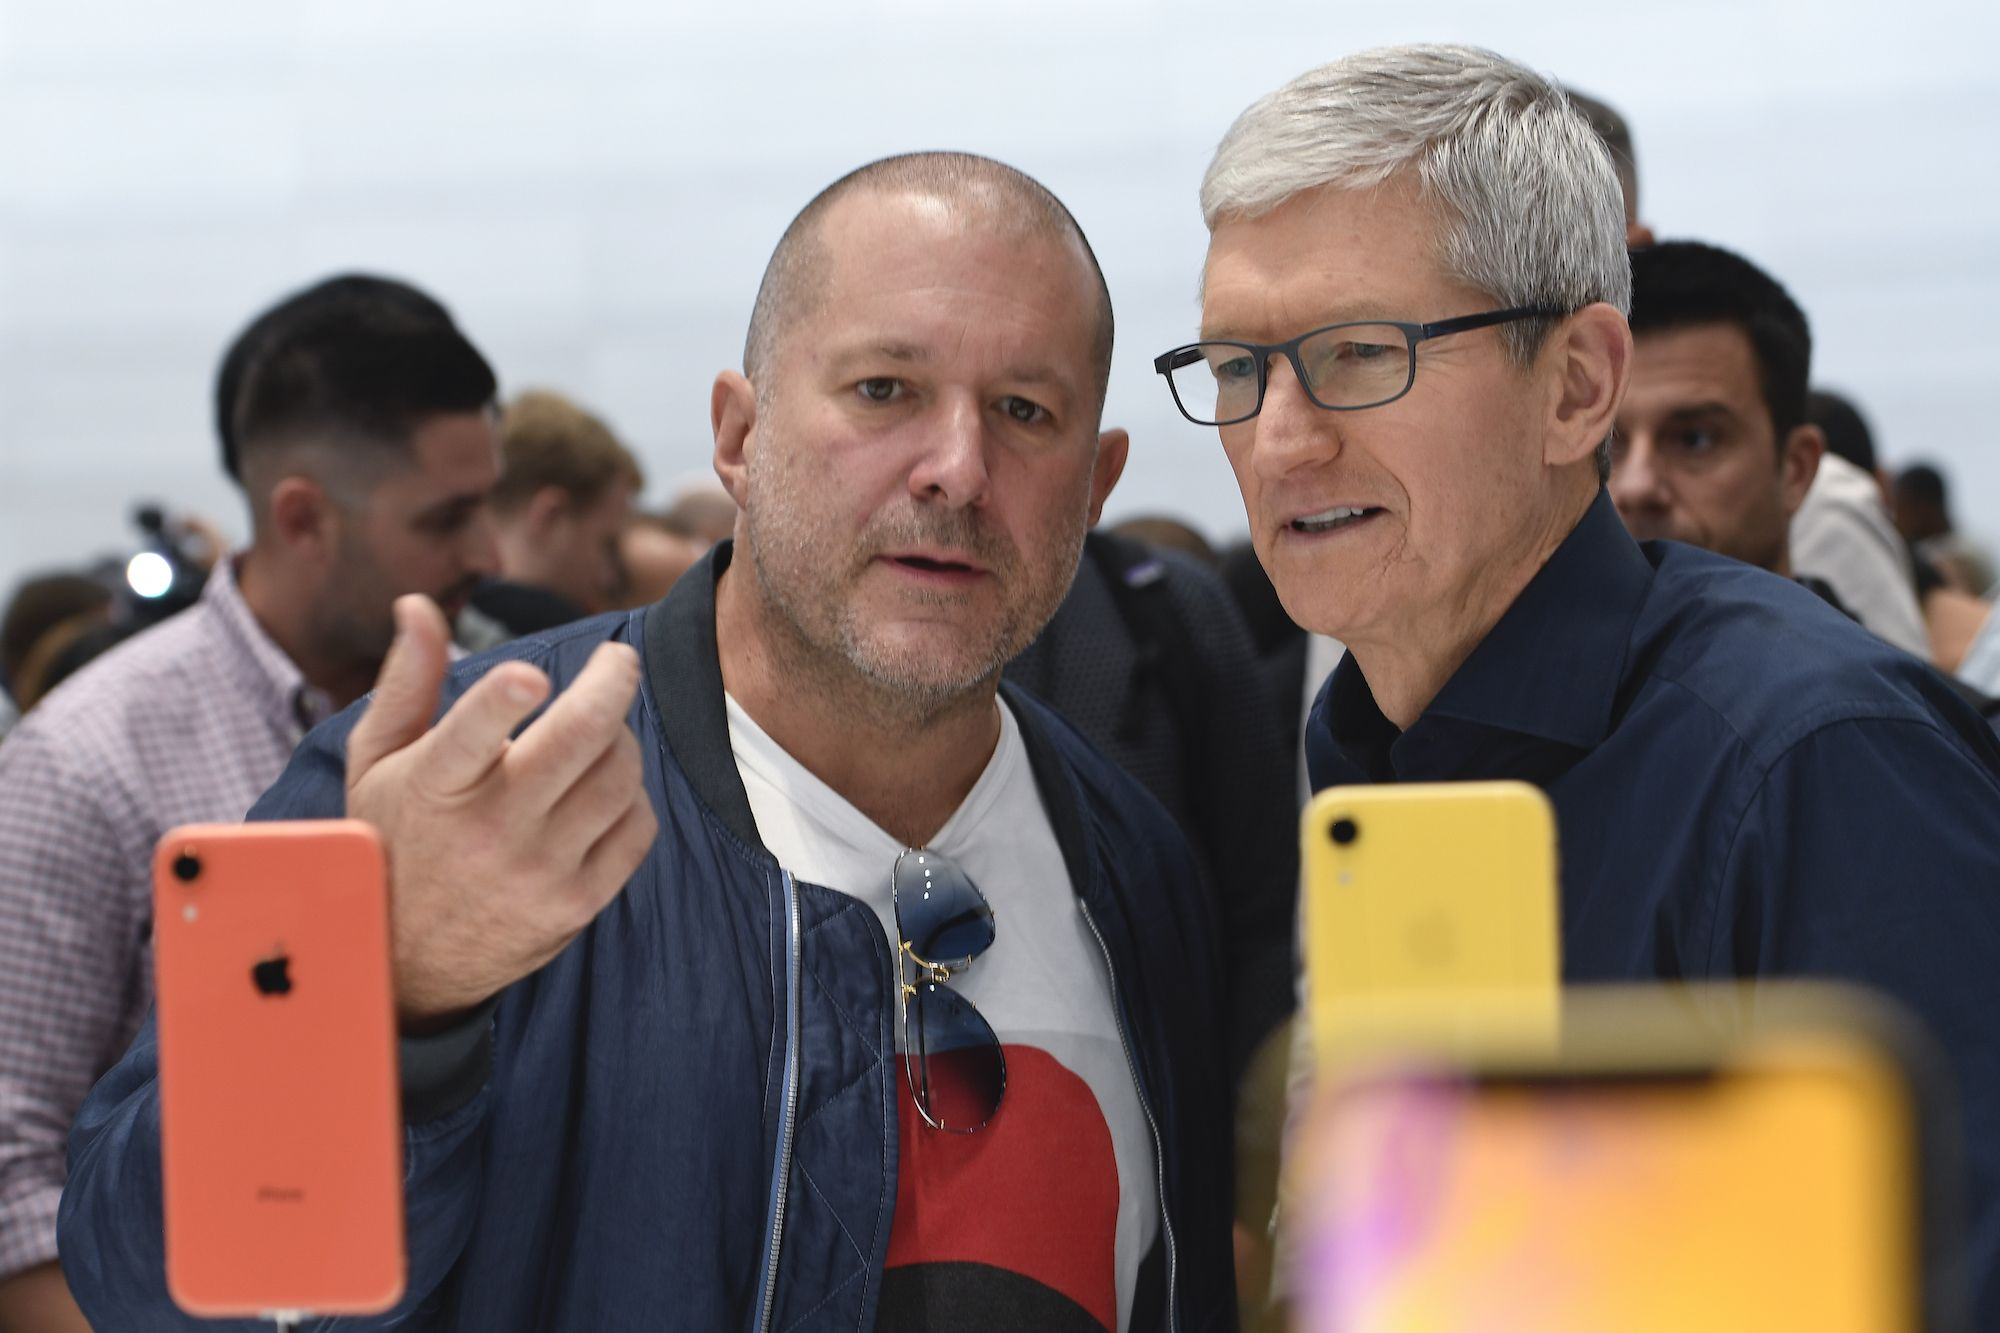 Apple's Legendary Chief Design Officer Jony Ive No Longer Appears On The Company's Leadership Page